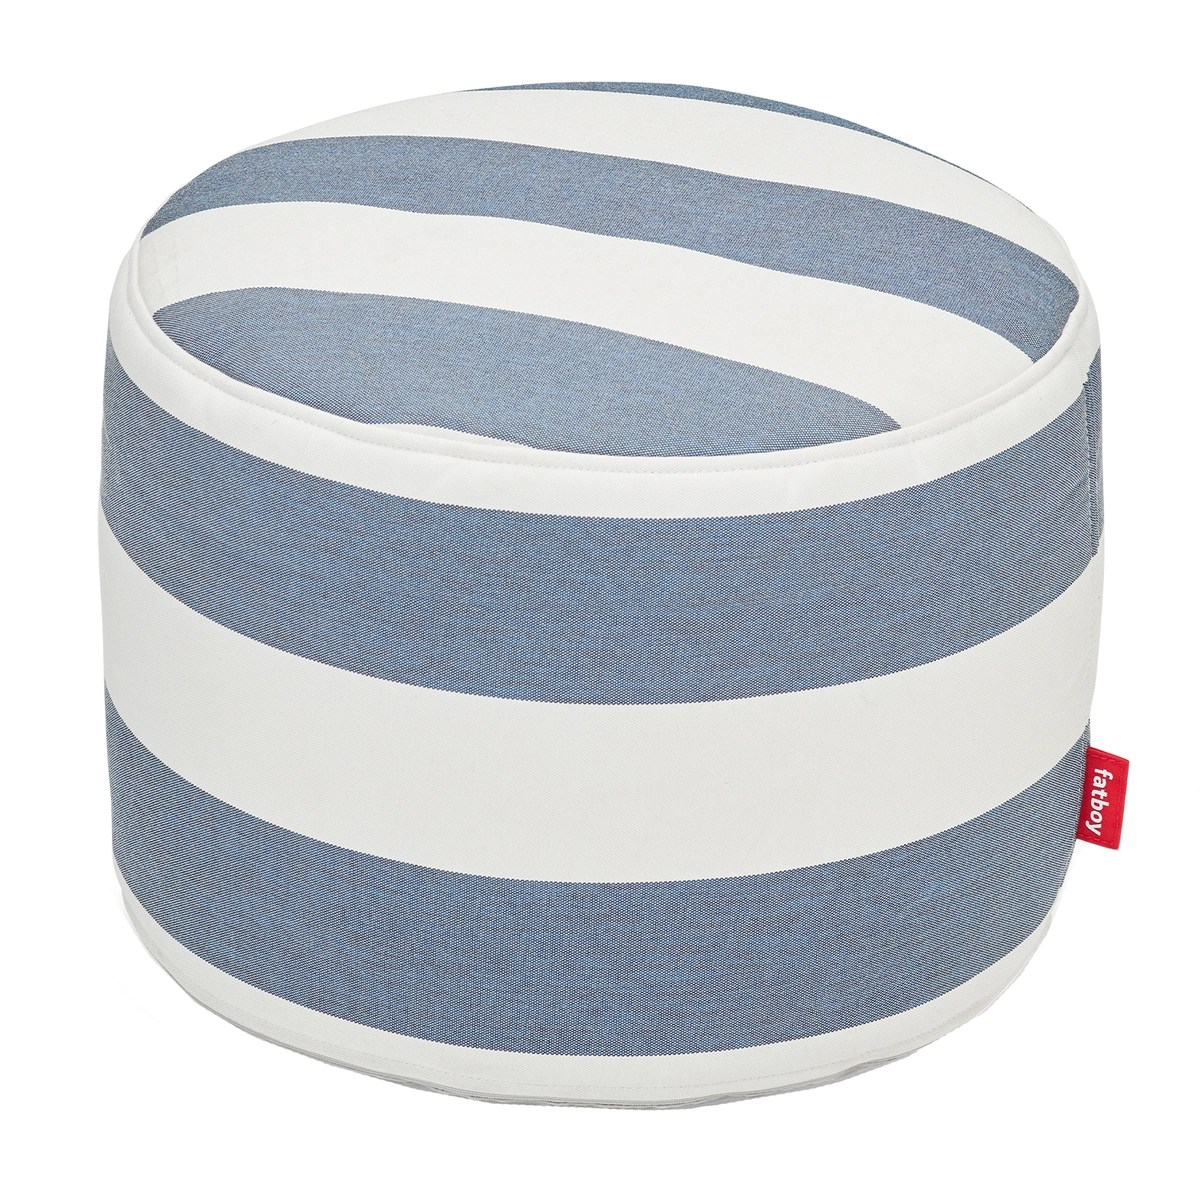 Fatboy Point Outdoor Pouf Striped Ocean Blue White Finnish Design Shop